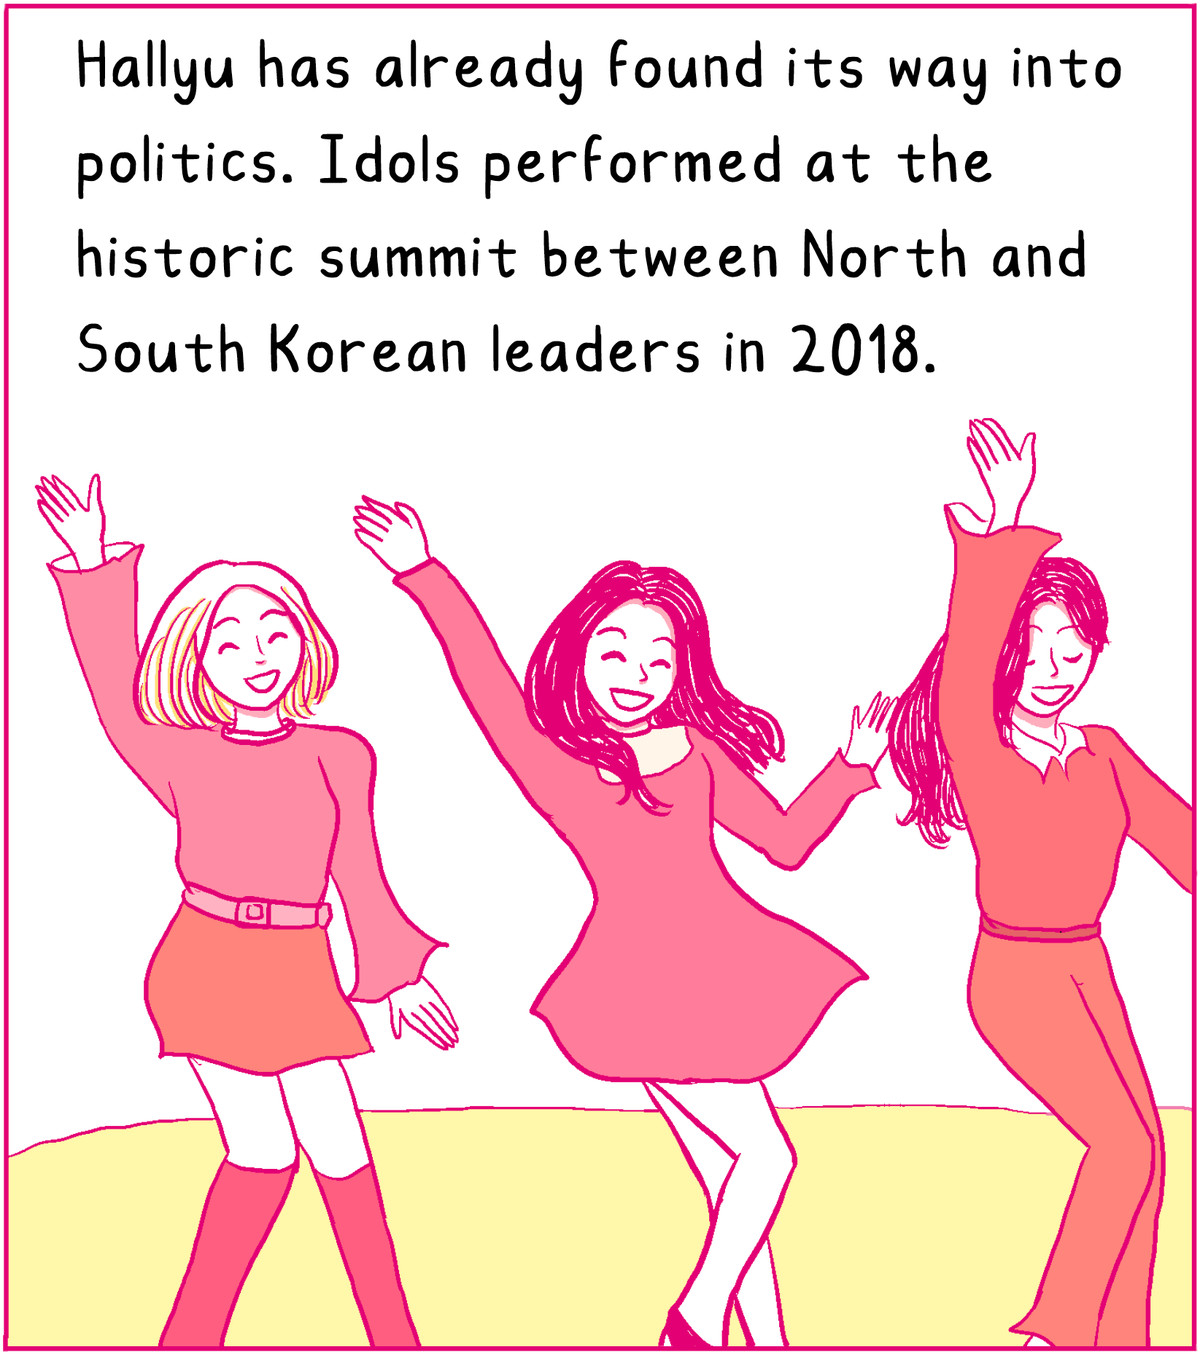 Hallyu has already found its way into politics. Idols performed at the historic summit between North and South Korean leaders in 2018.